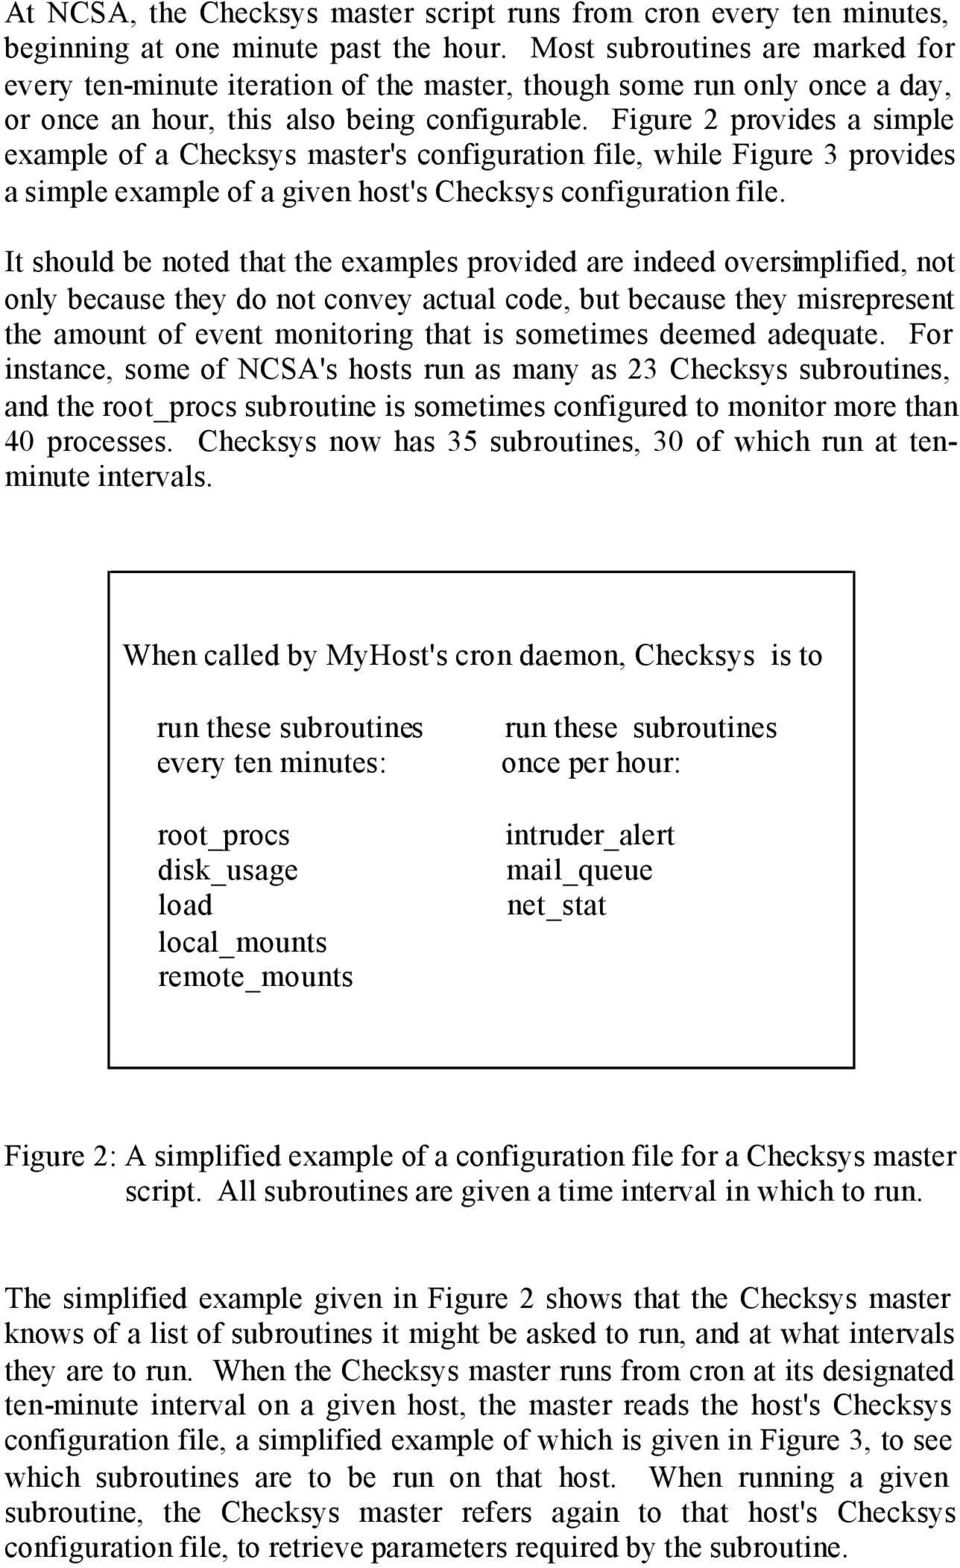 Figure 2 provides a simple example of a Checksys master's configuration file, while Figure 3 provides a simple example of a given host's Checksys configuration file.